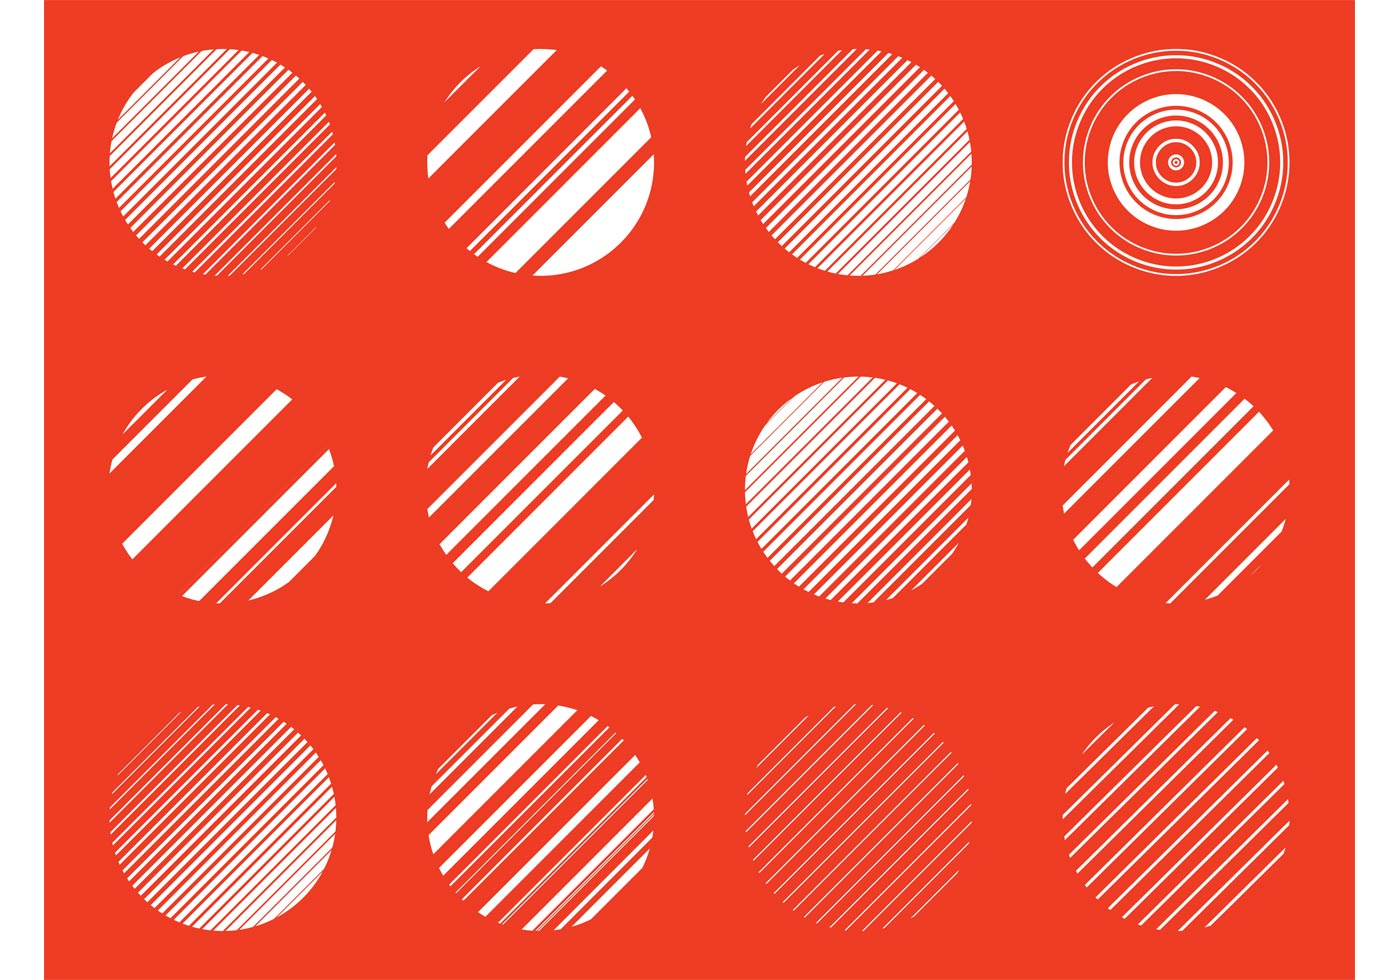 Abstract Circles Vectors - Download Free Vector Art, Stock ...